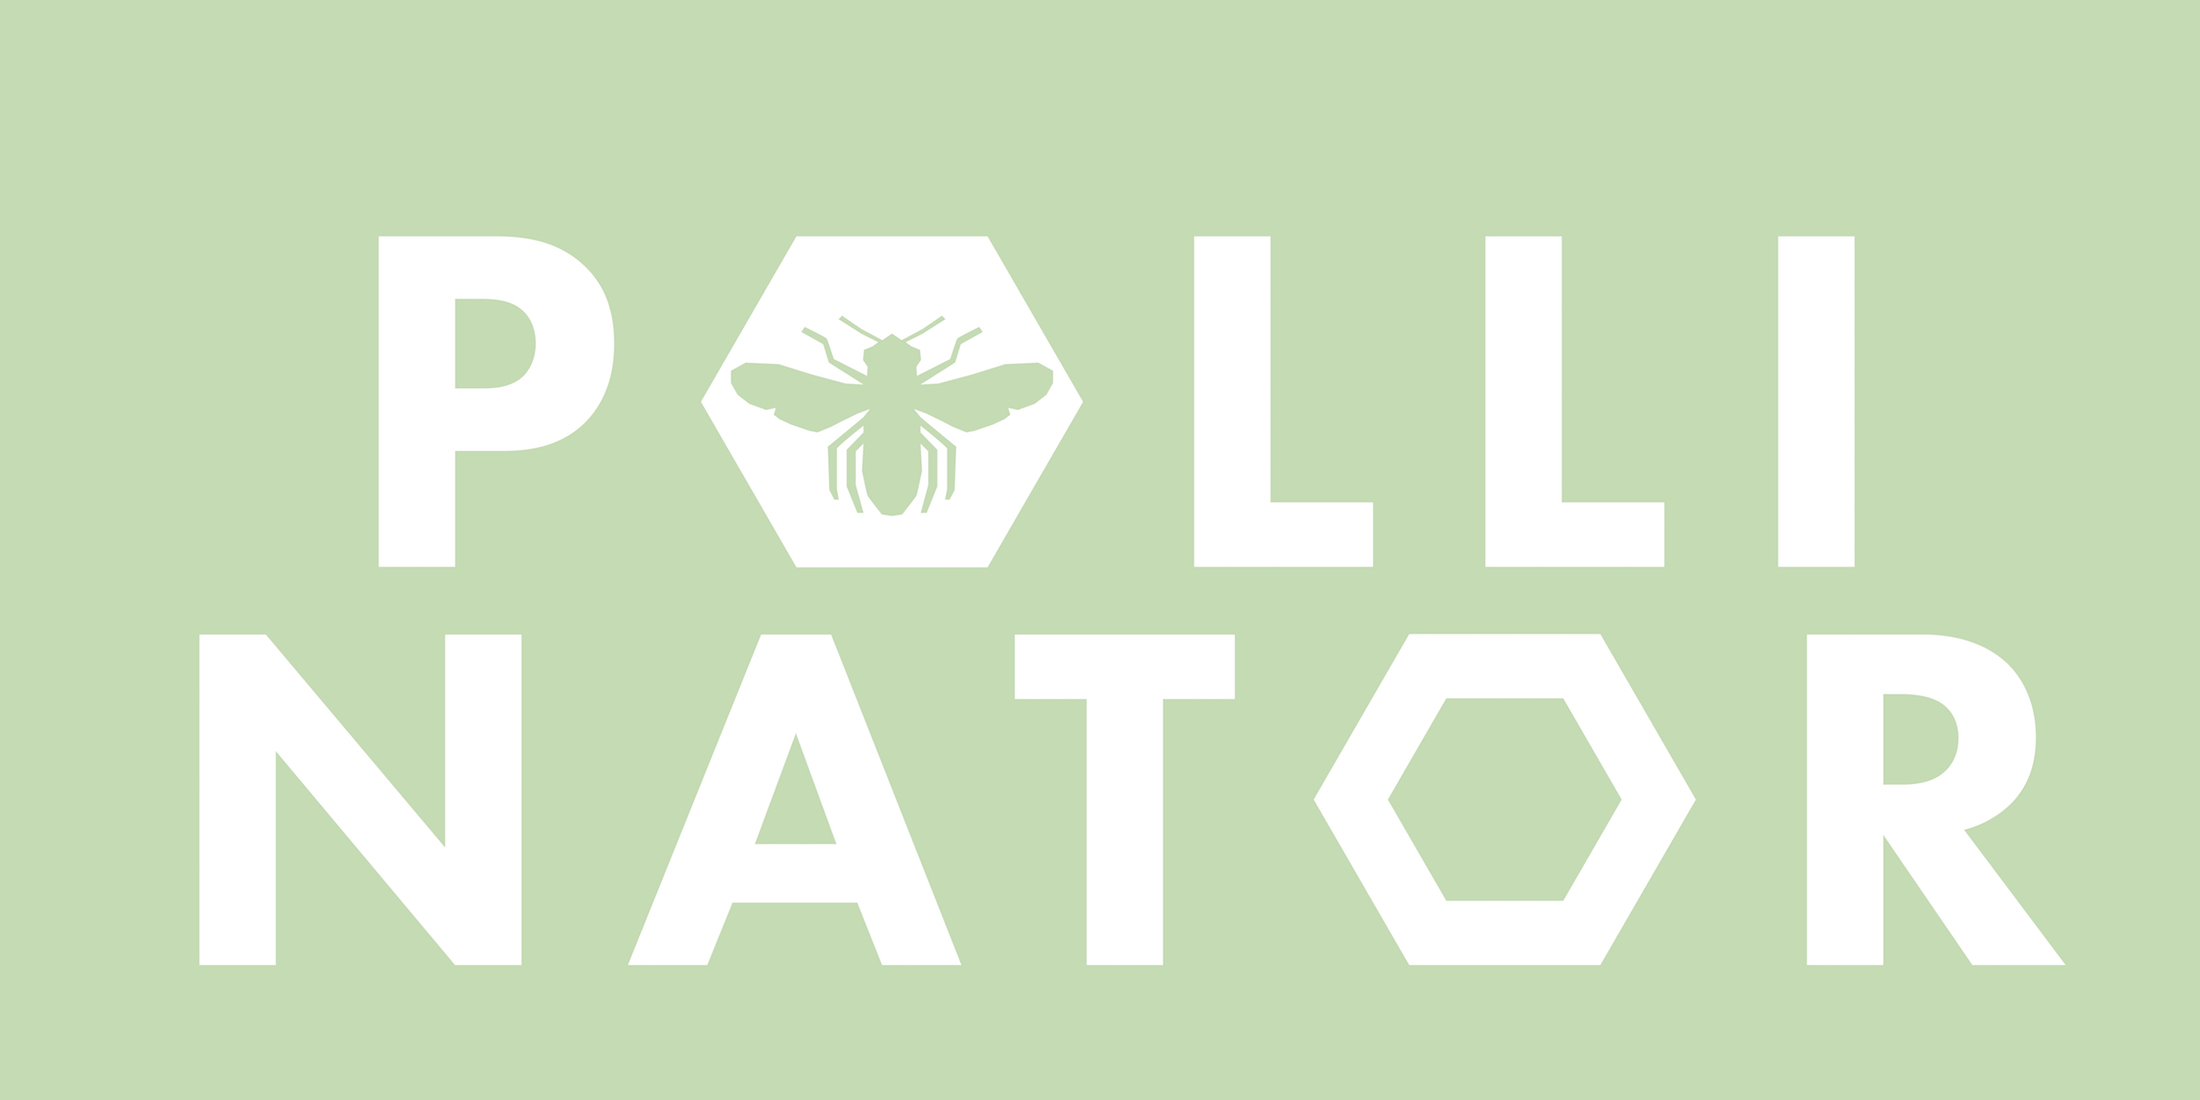 What's the latest buzz? - Pollinator - The Practicum …is gearing up for an event in early October 2019!We're currently seeking sponsors, speakers, participants, venue hosts, volunteers…and more!Registration will open in early August.To learn more or to get involved, read on!